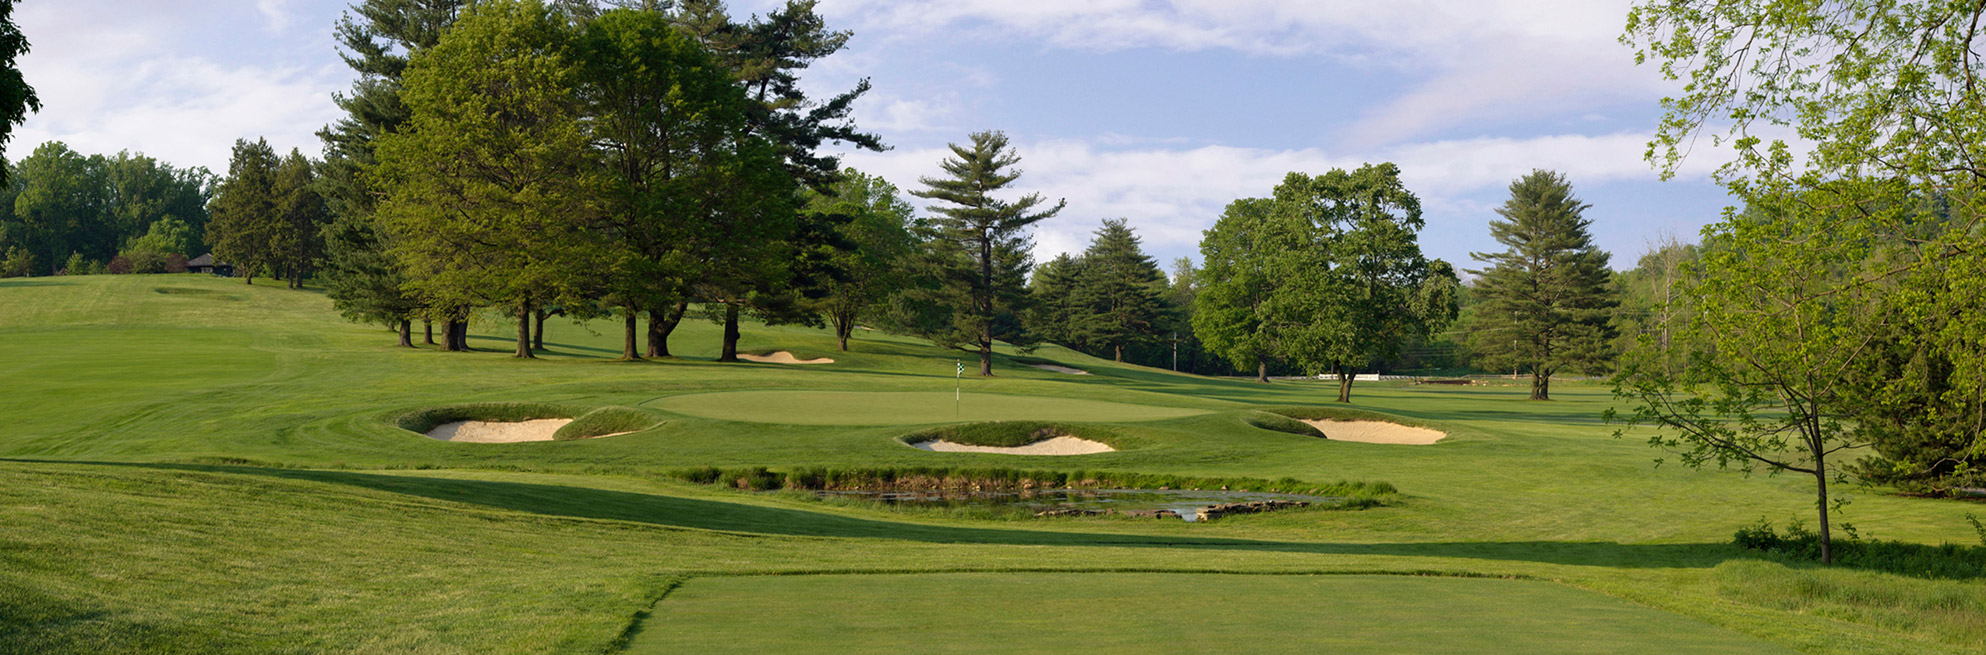 Golf Course Image - Kennett Square Golf & Contry Club No. 11